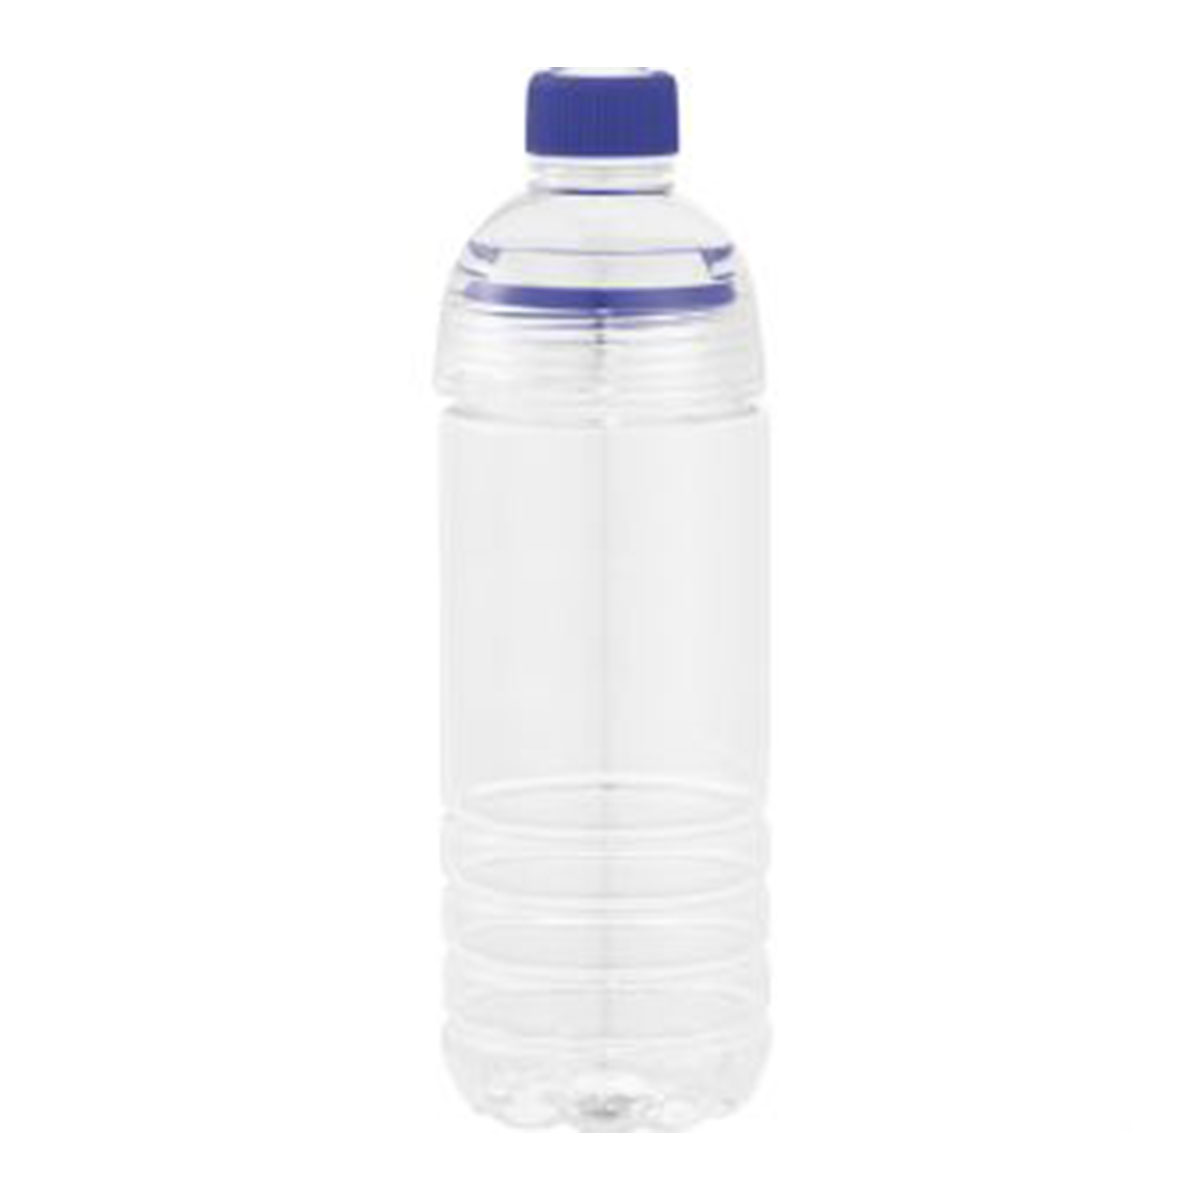 The Water Bottle-Clear & Blue.